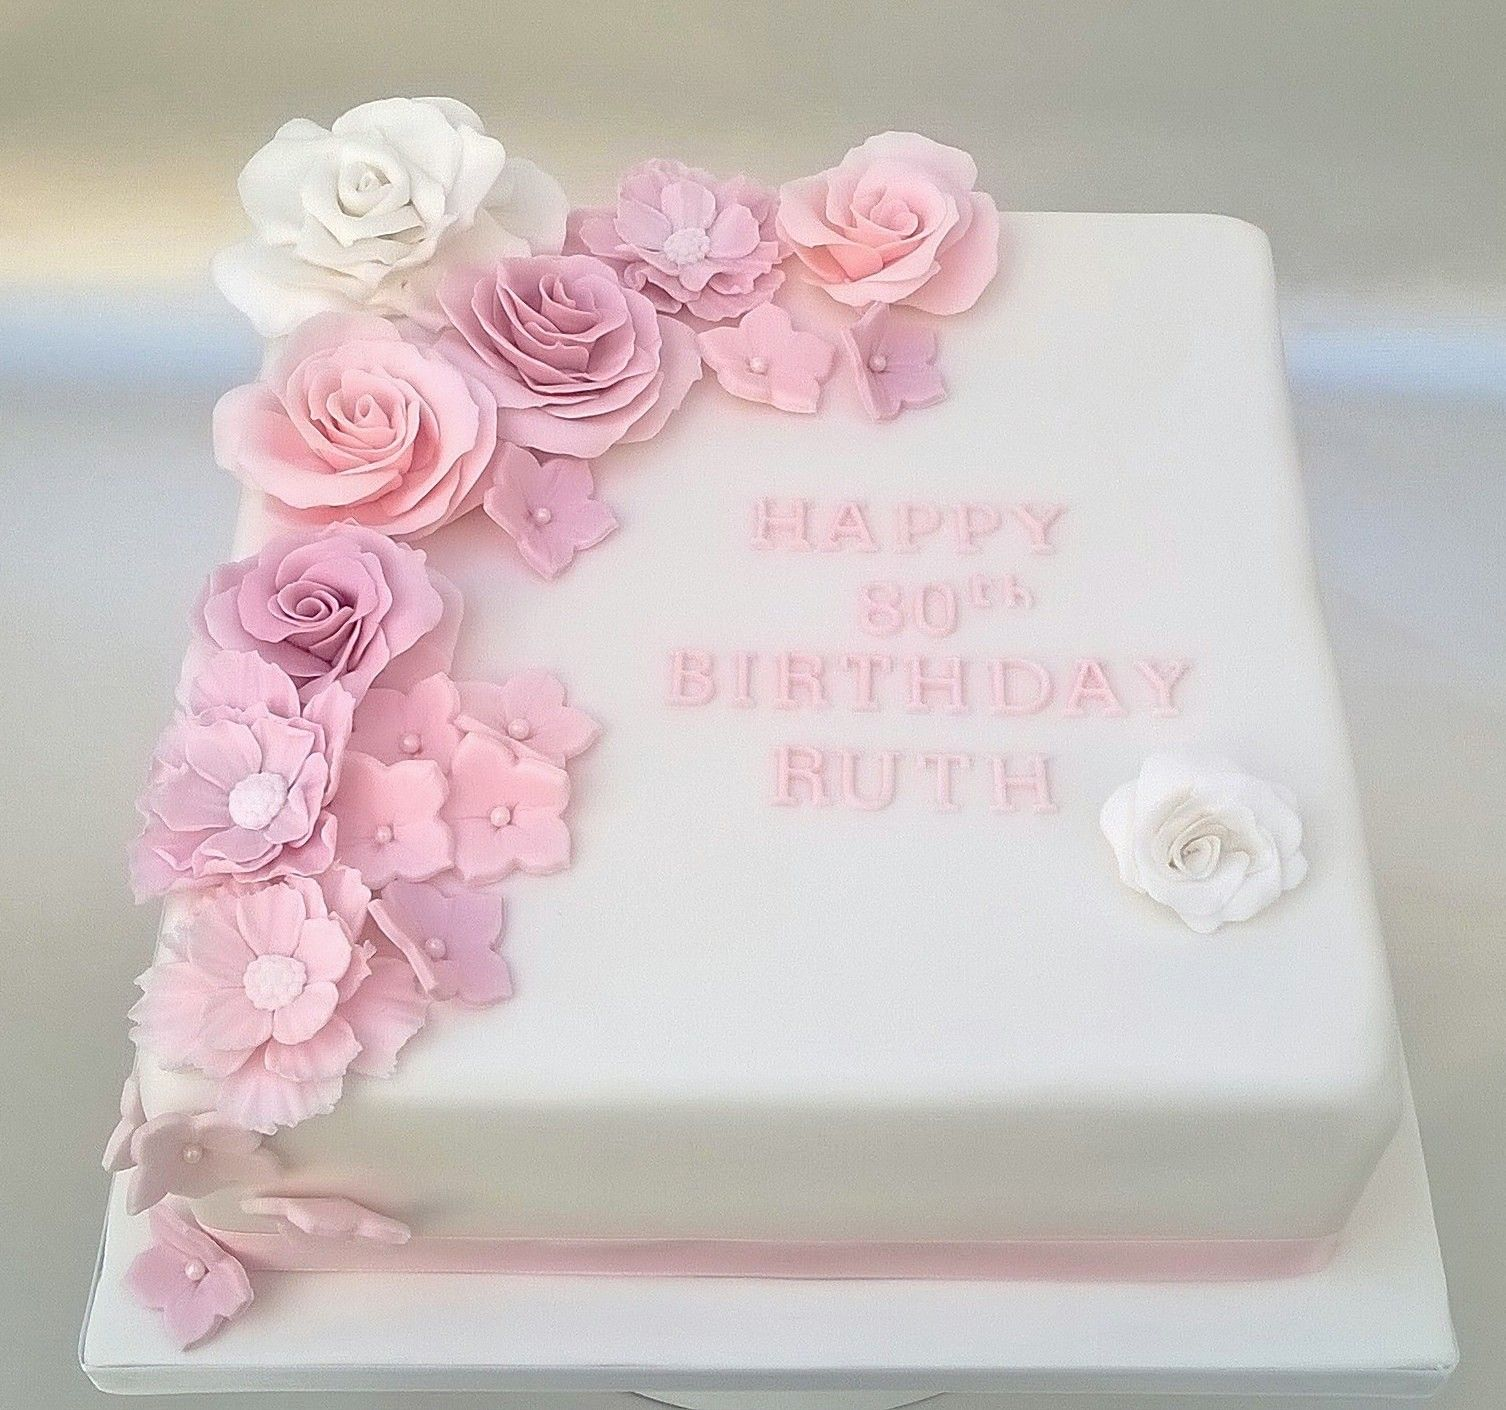 Miraculous 80Th Birthday Cake With Pink Gumpaste Flowers 80 Birthday Cake Funny Birthday Cards Online Hendilapandamsfinfo